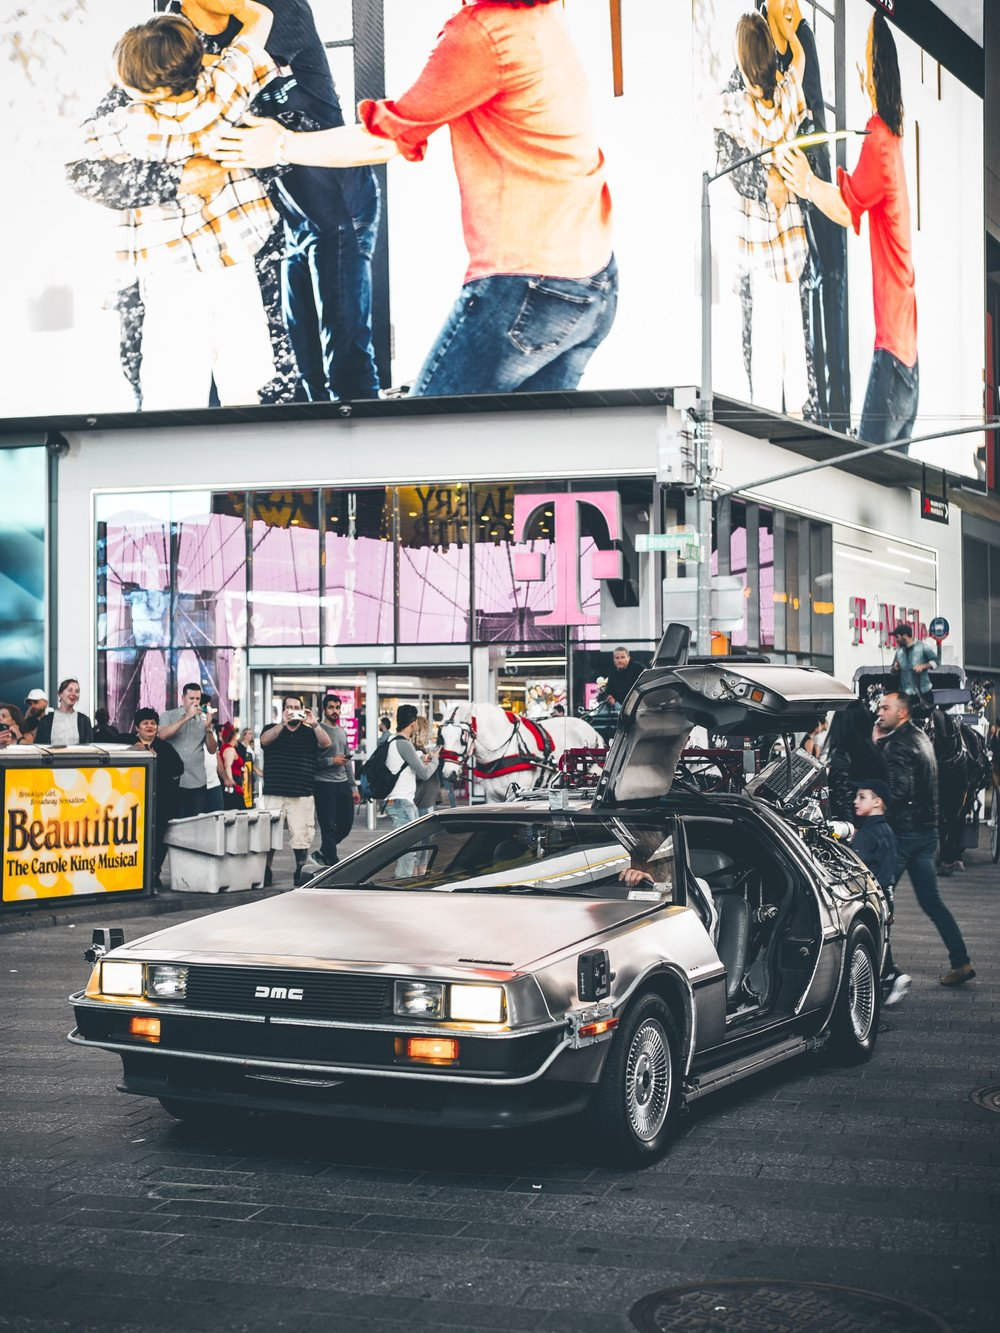 Delorean Back to the Future Times Square NYC New York City